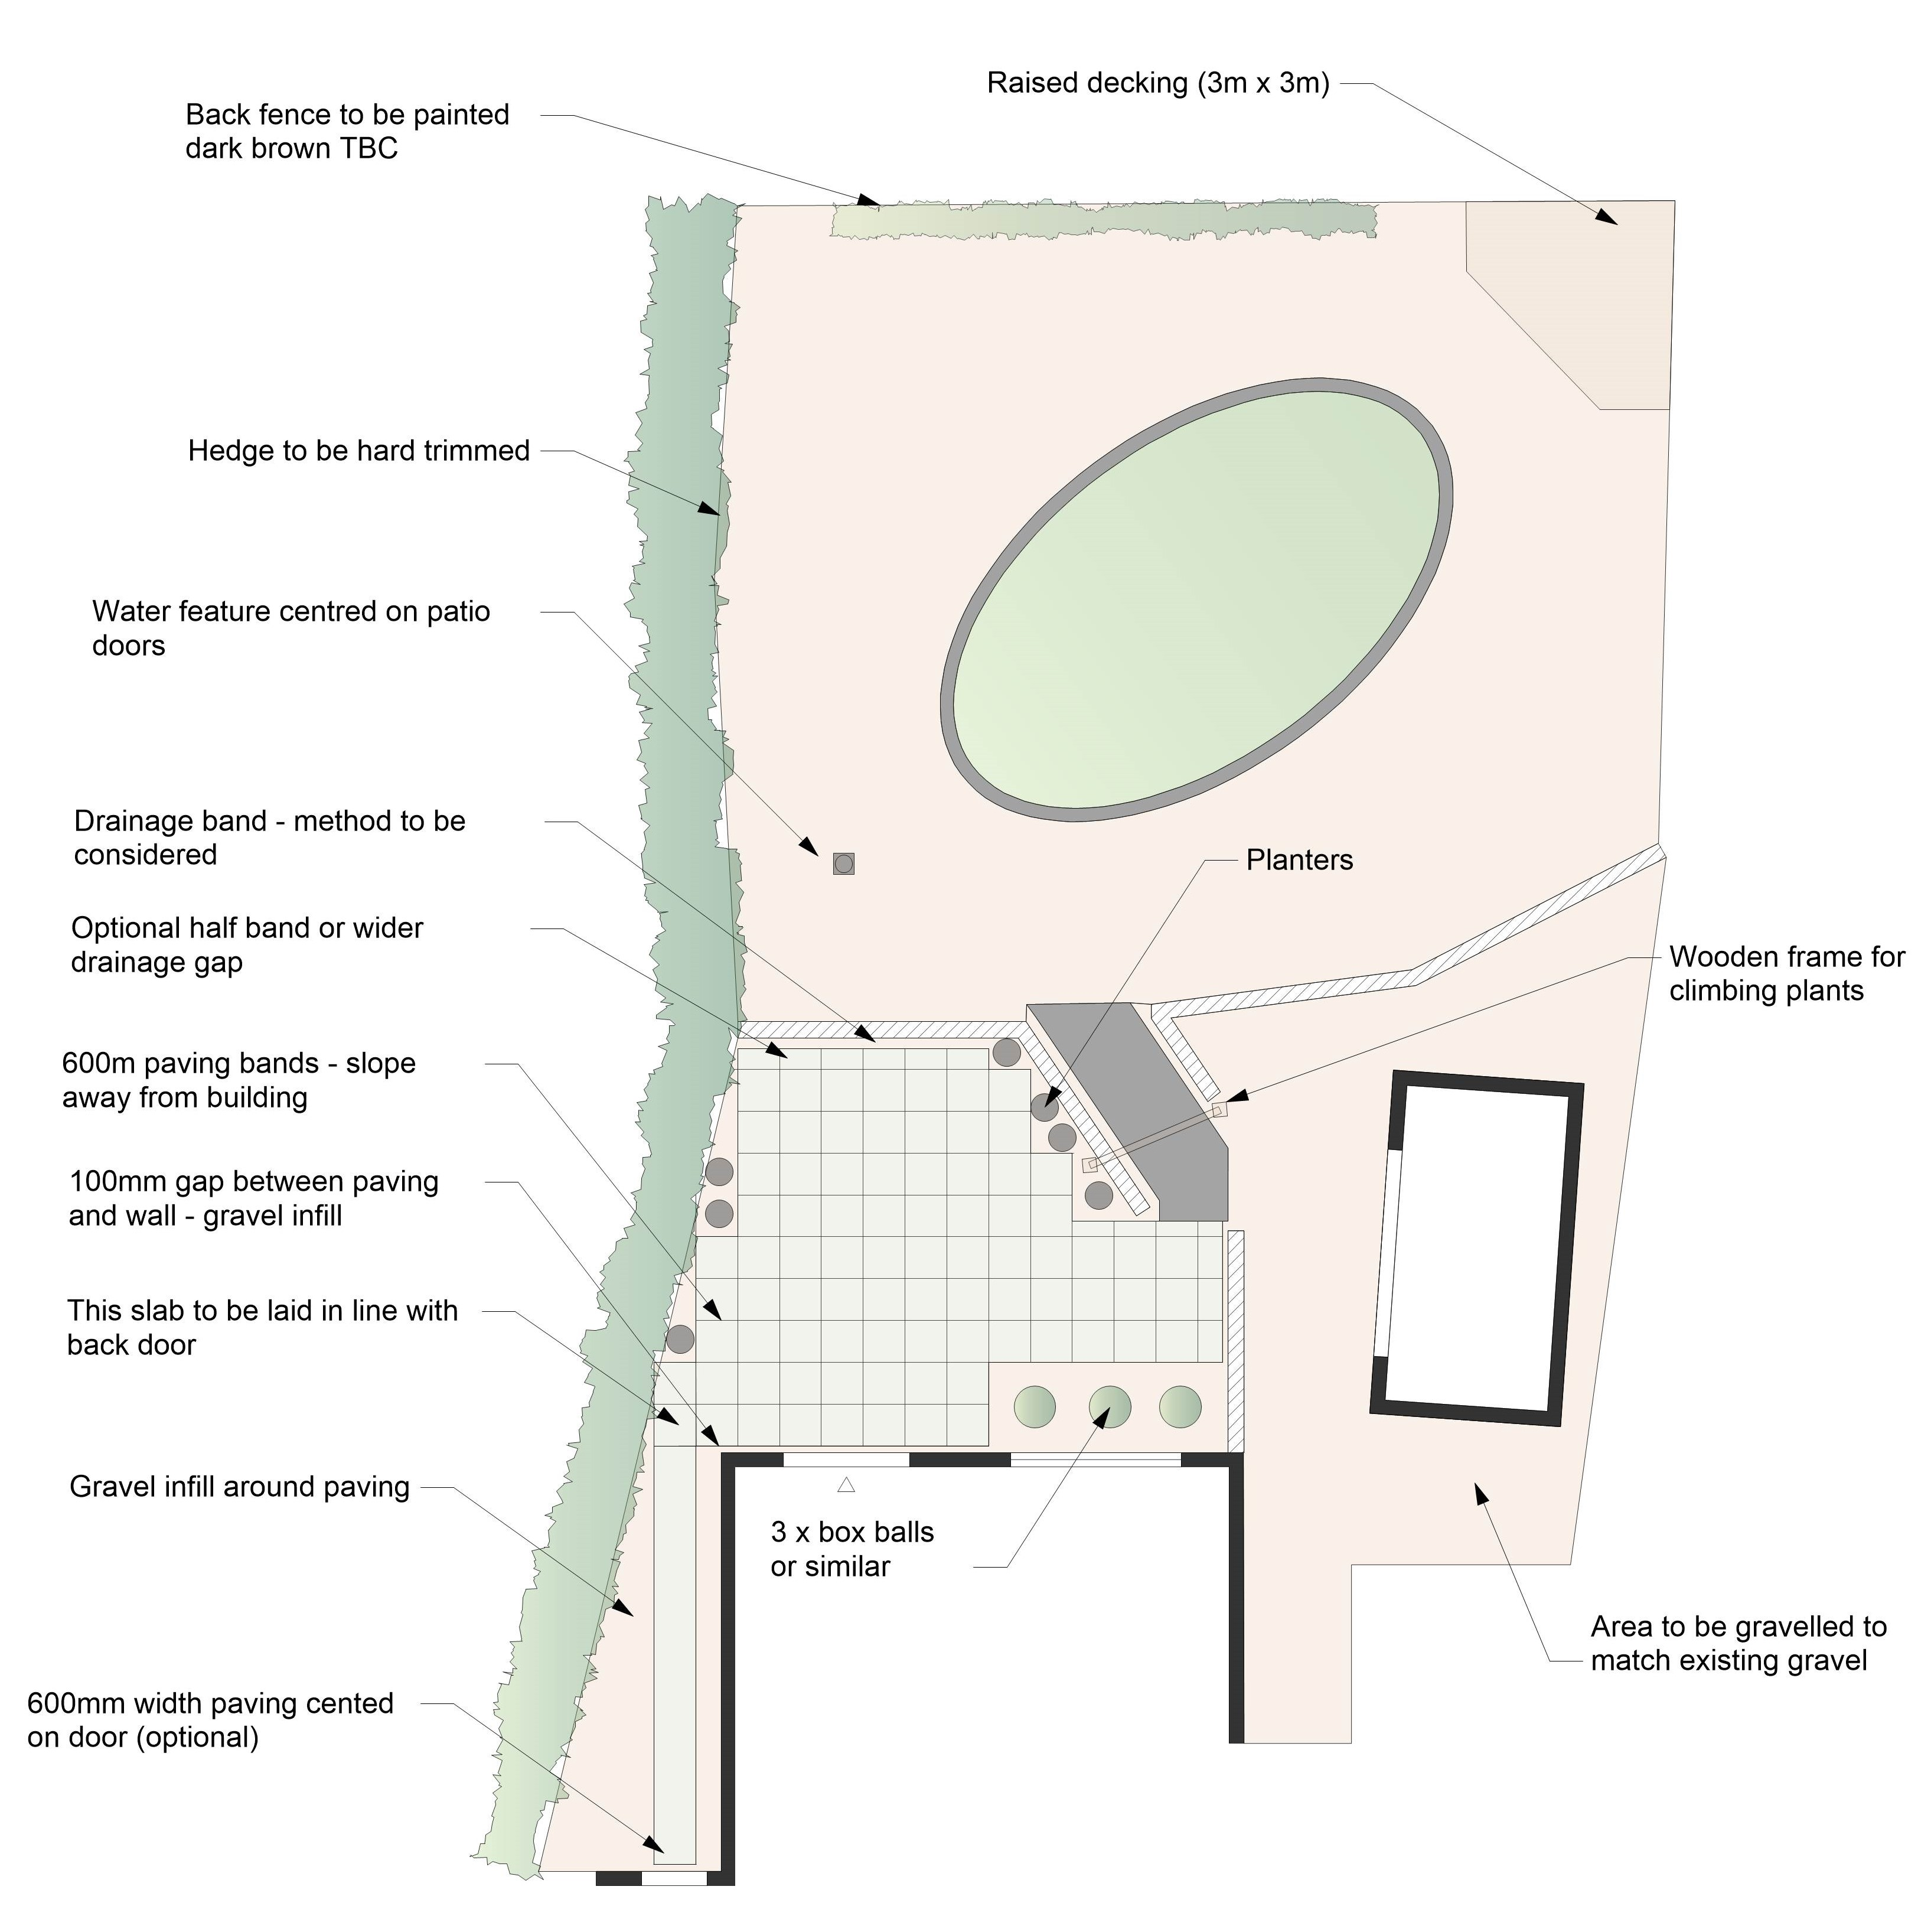 Garden design and build plan - hard landscaping